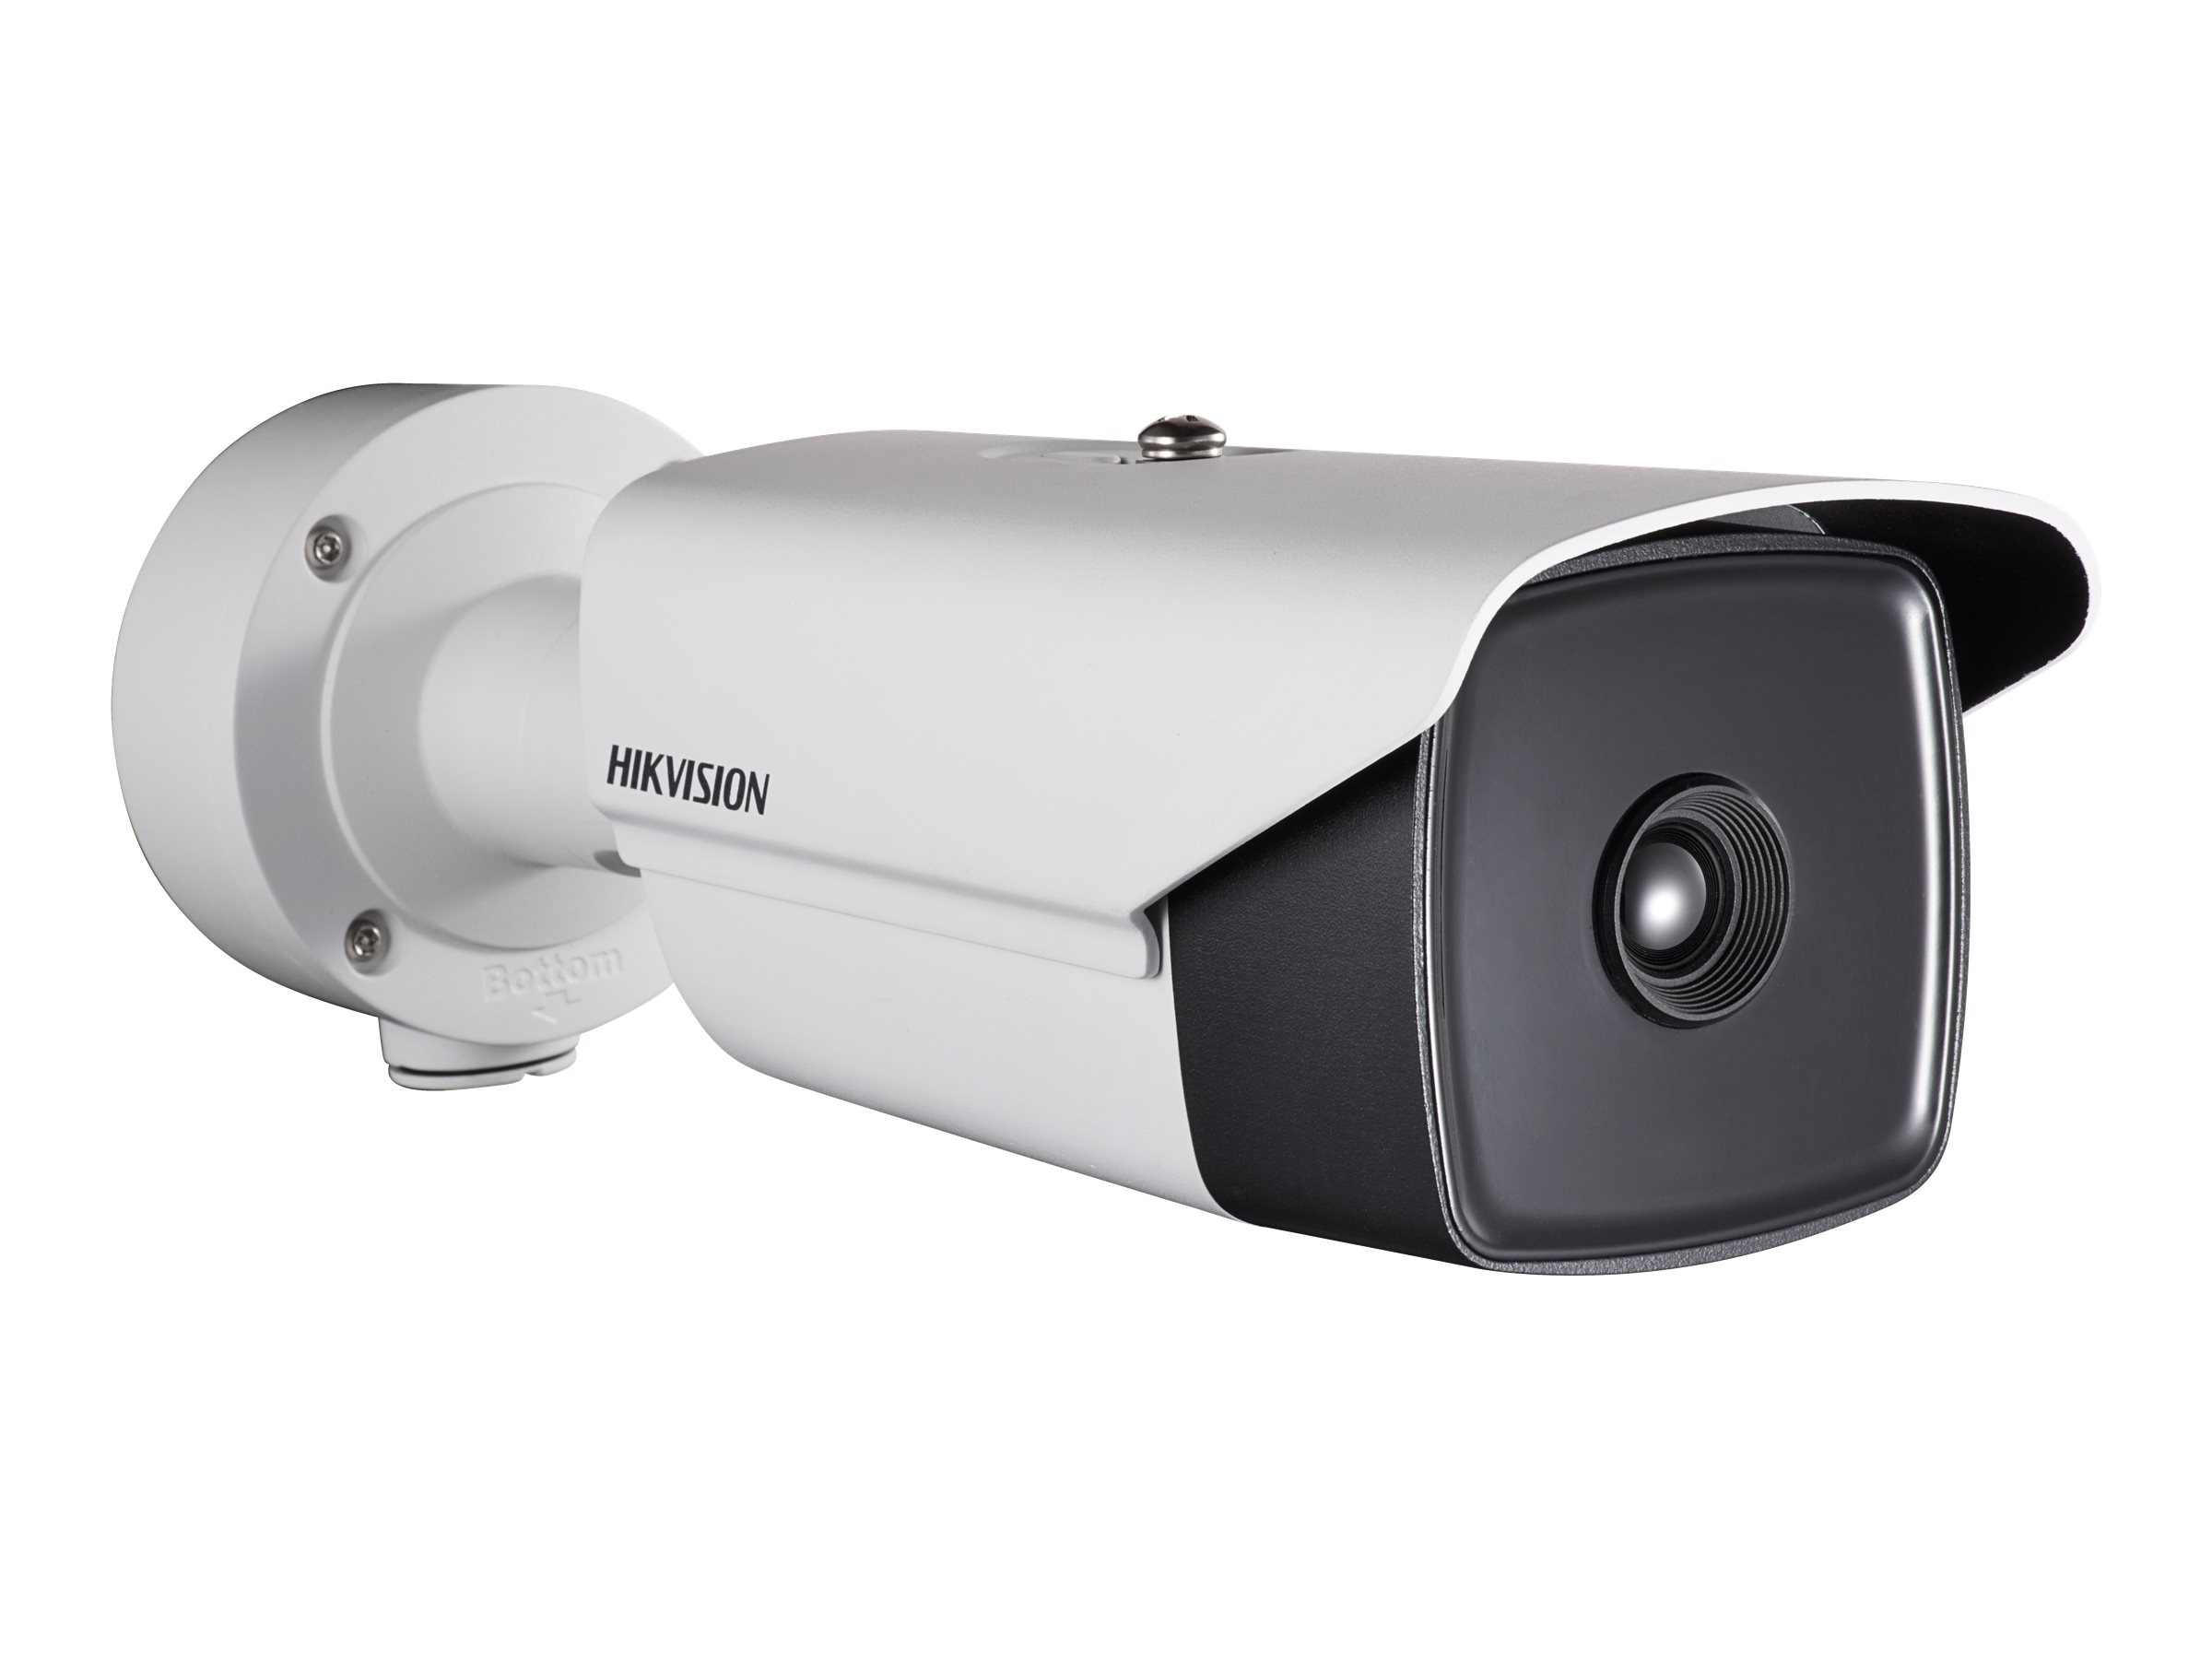 Hikvision DeepinView Thermal Network Bullet Camera DS-2TD2136-25/V1 - thermal network camera